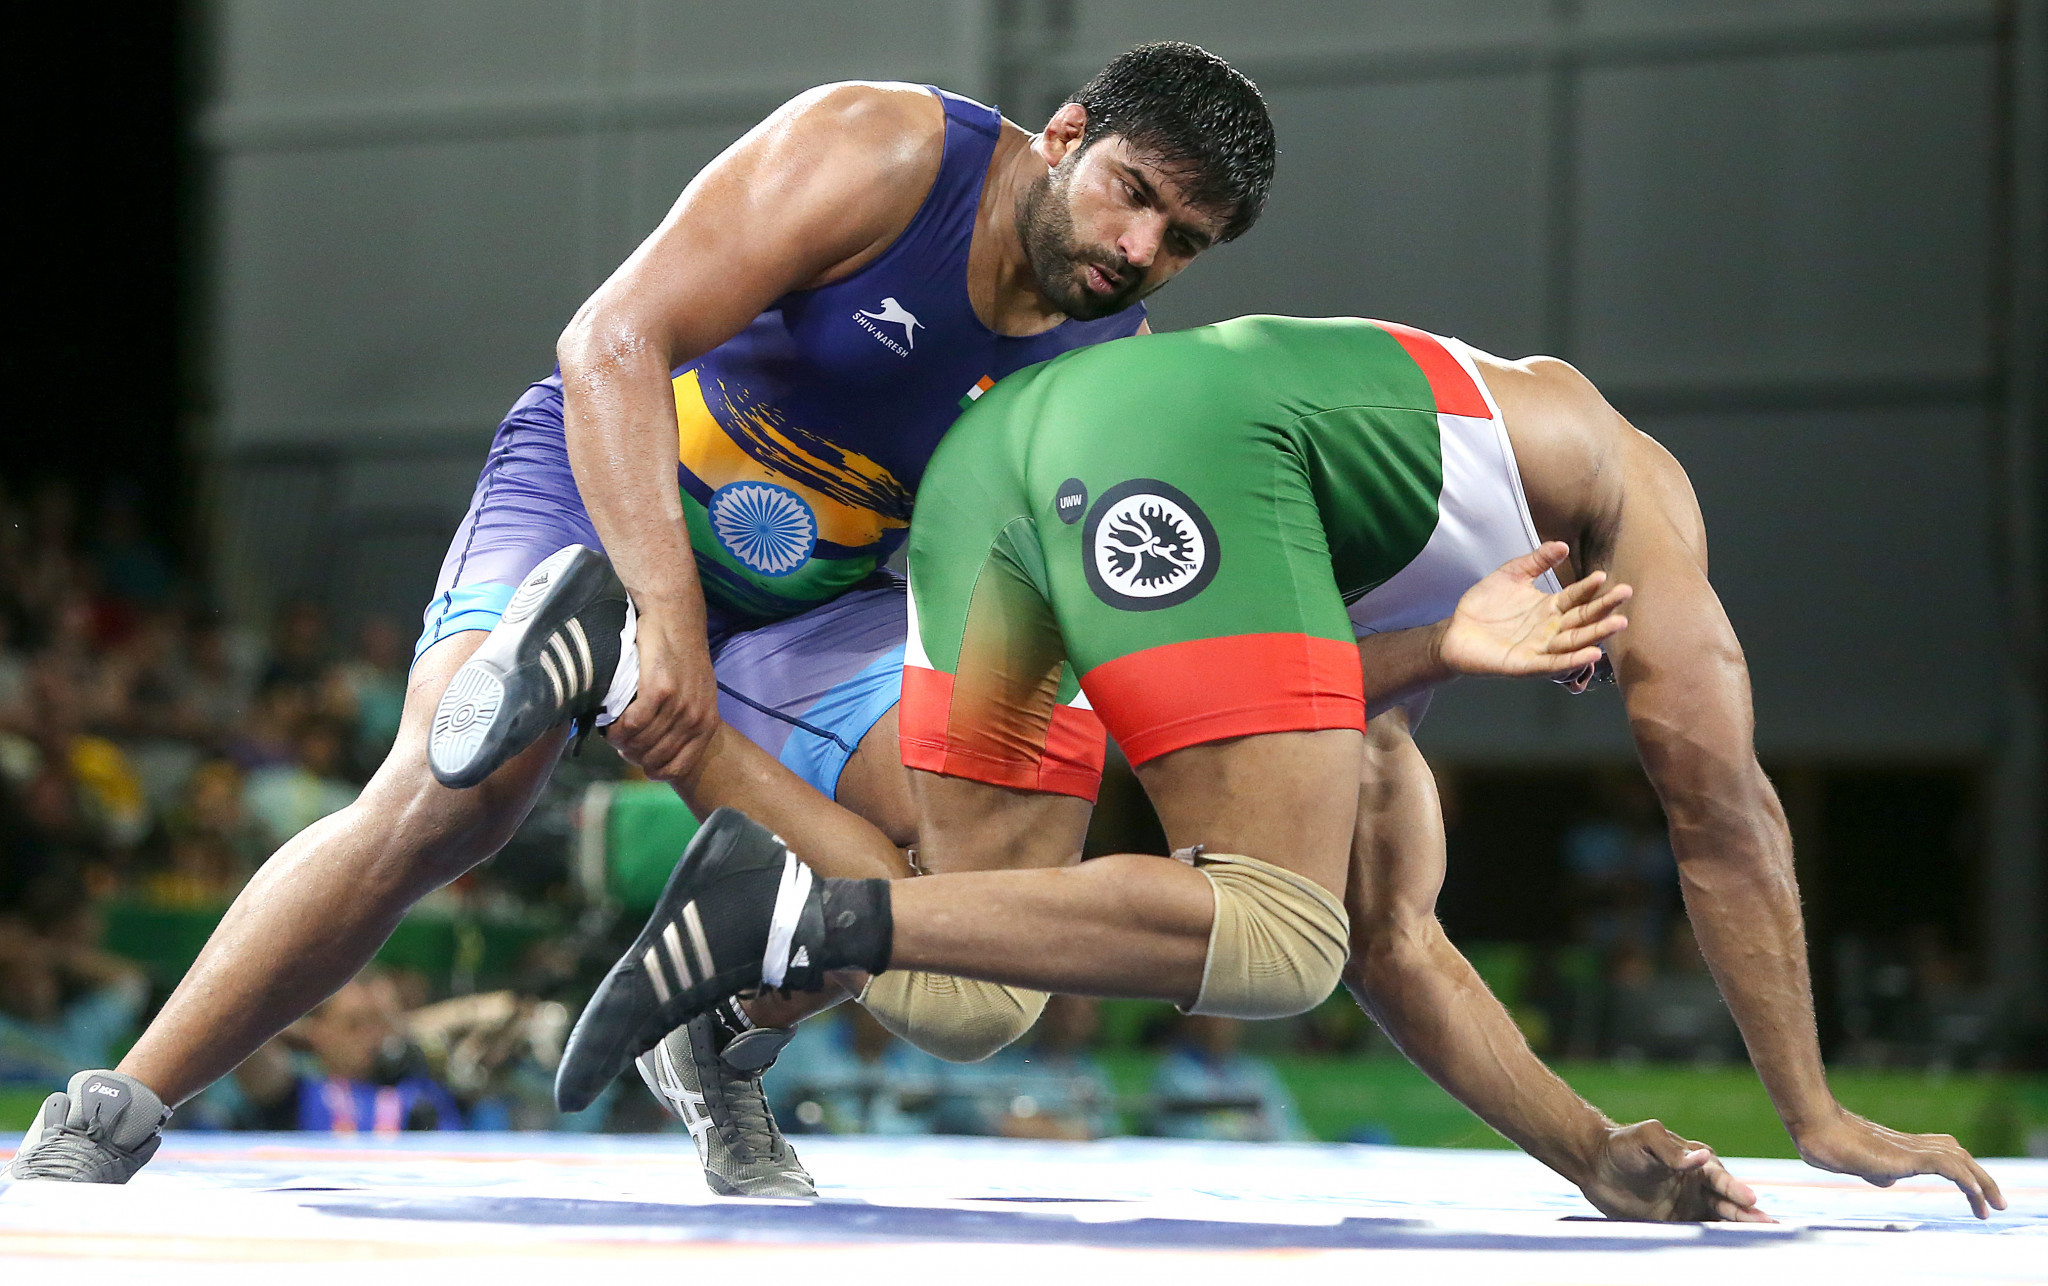 India's Sumit came out on top in the men's 125kg freestyle category ©Getty Images